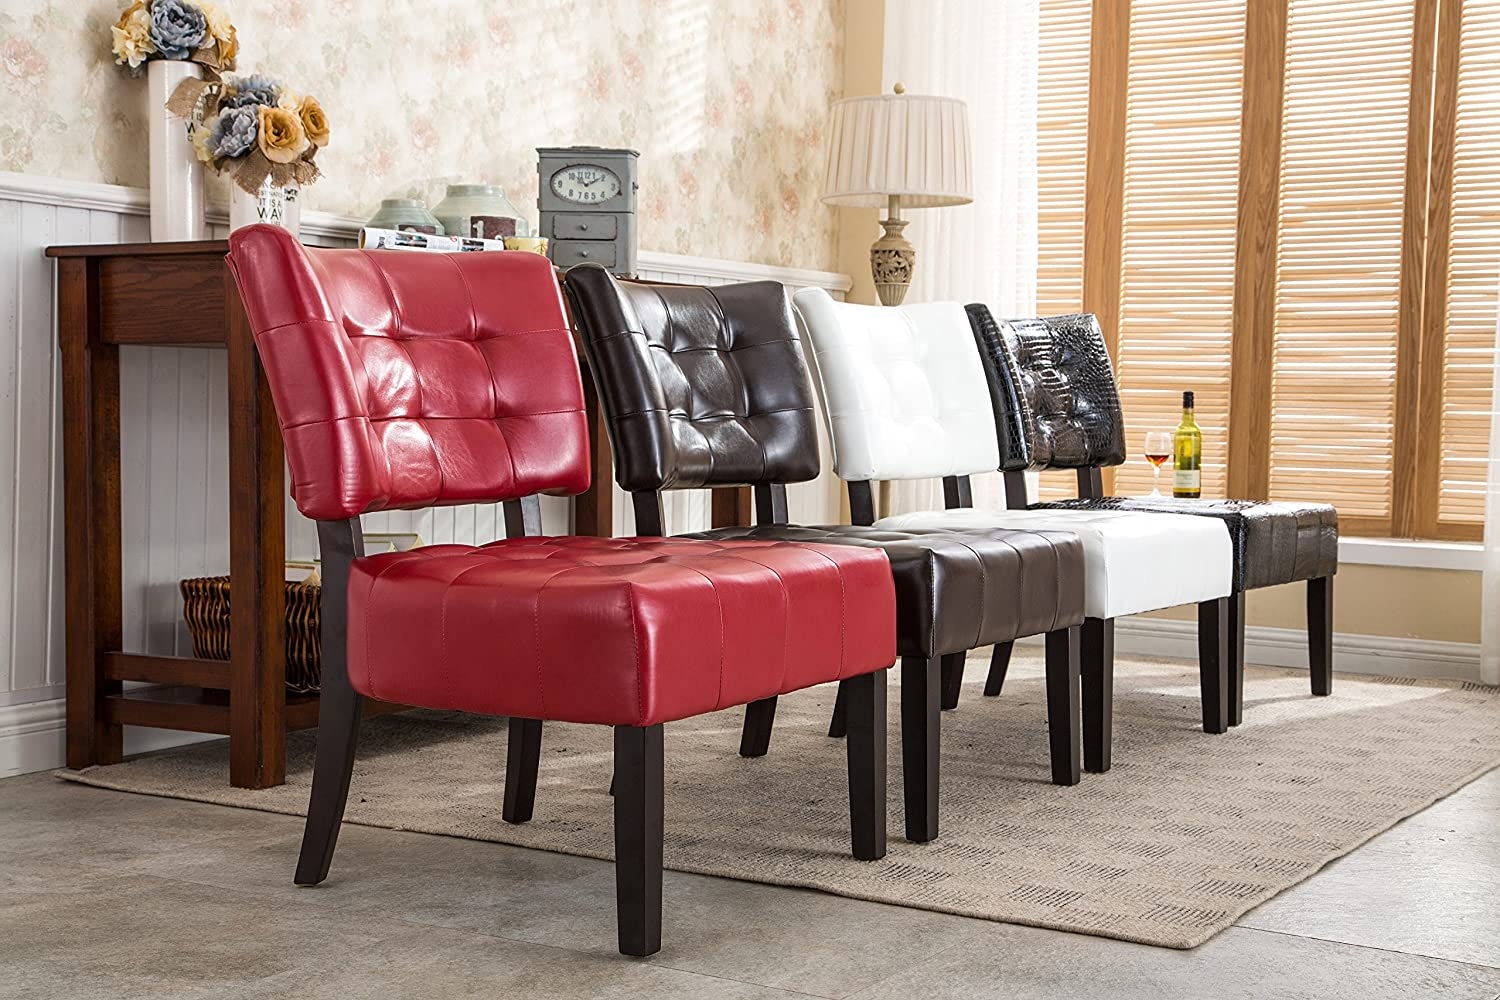 Awesome Accent Chairs Solution For Small Living Space Ease Bedding Machost Co Dining Chair Design Ideas Machostcouk